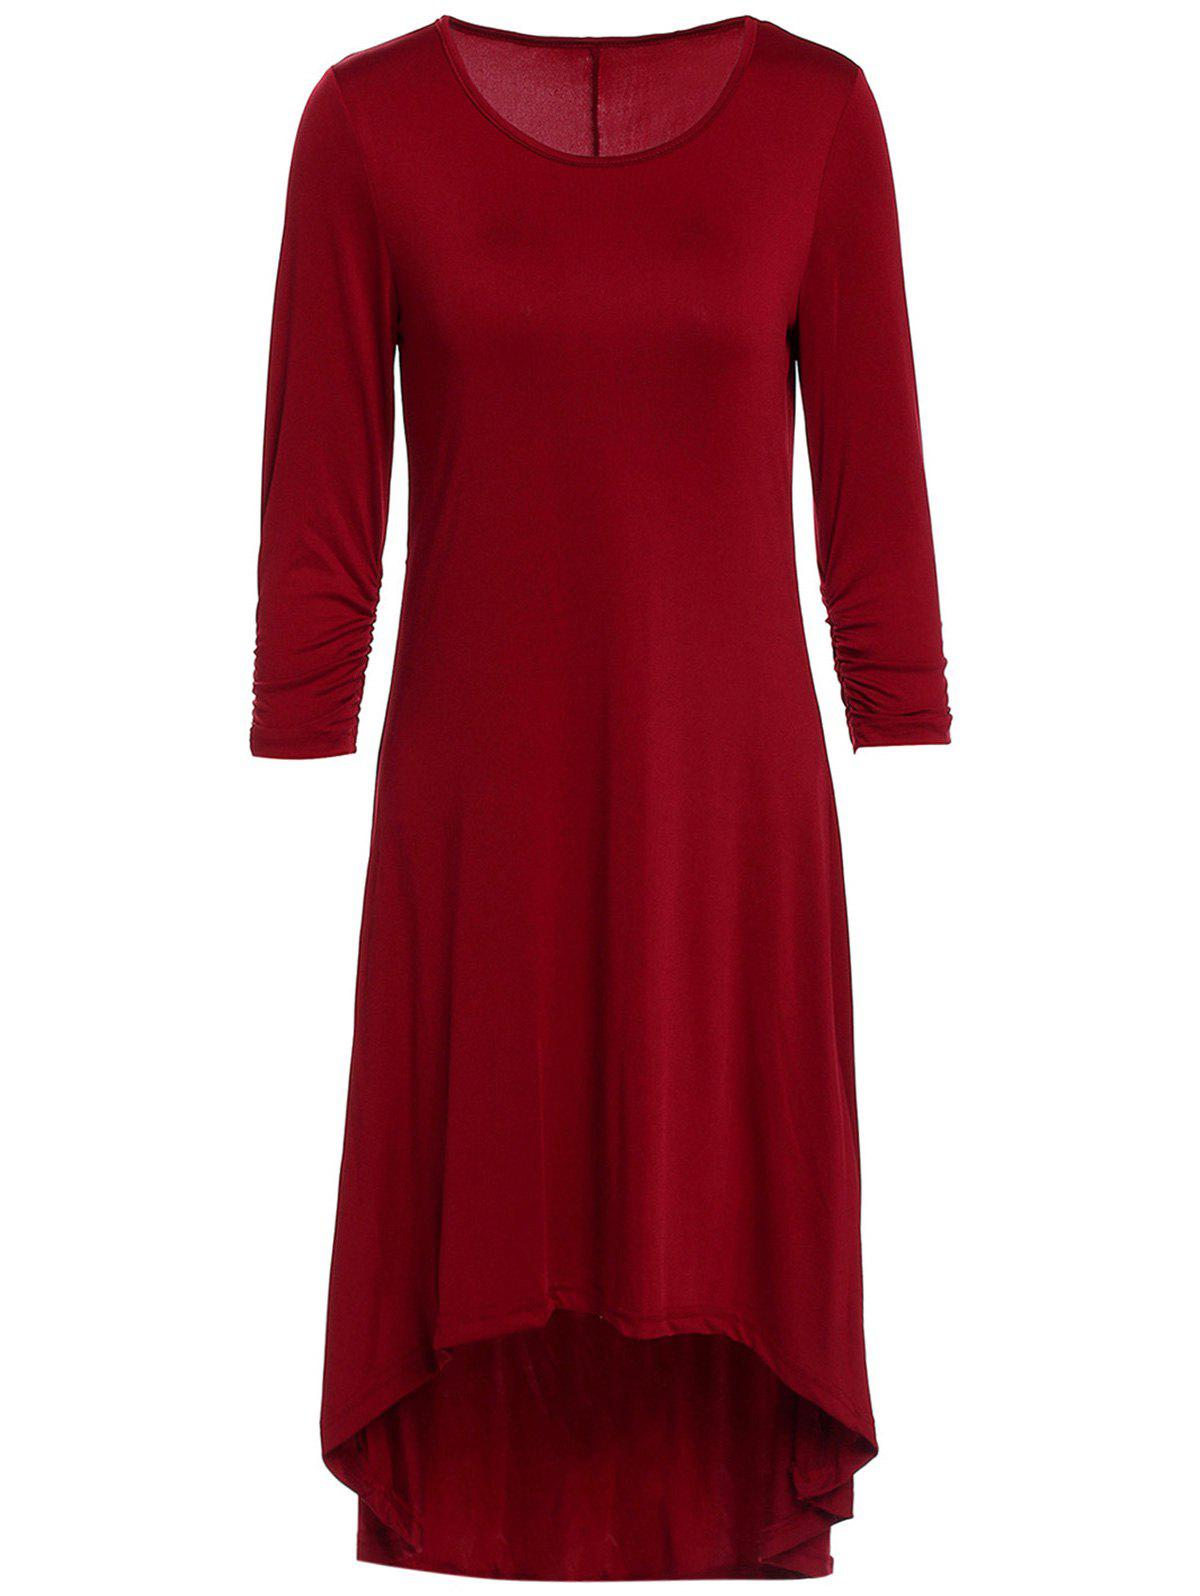 Hot Casual Scoop Neck 3/4 Sleeve Solid Color Asymmetric Dress For Women